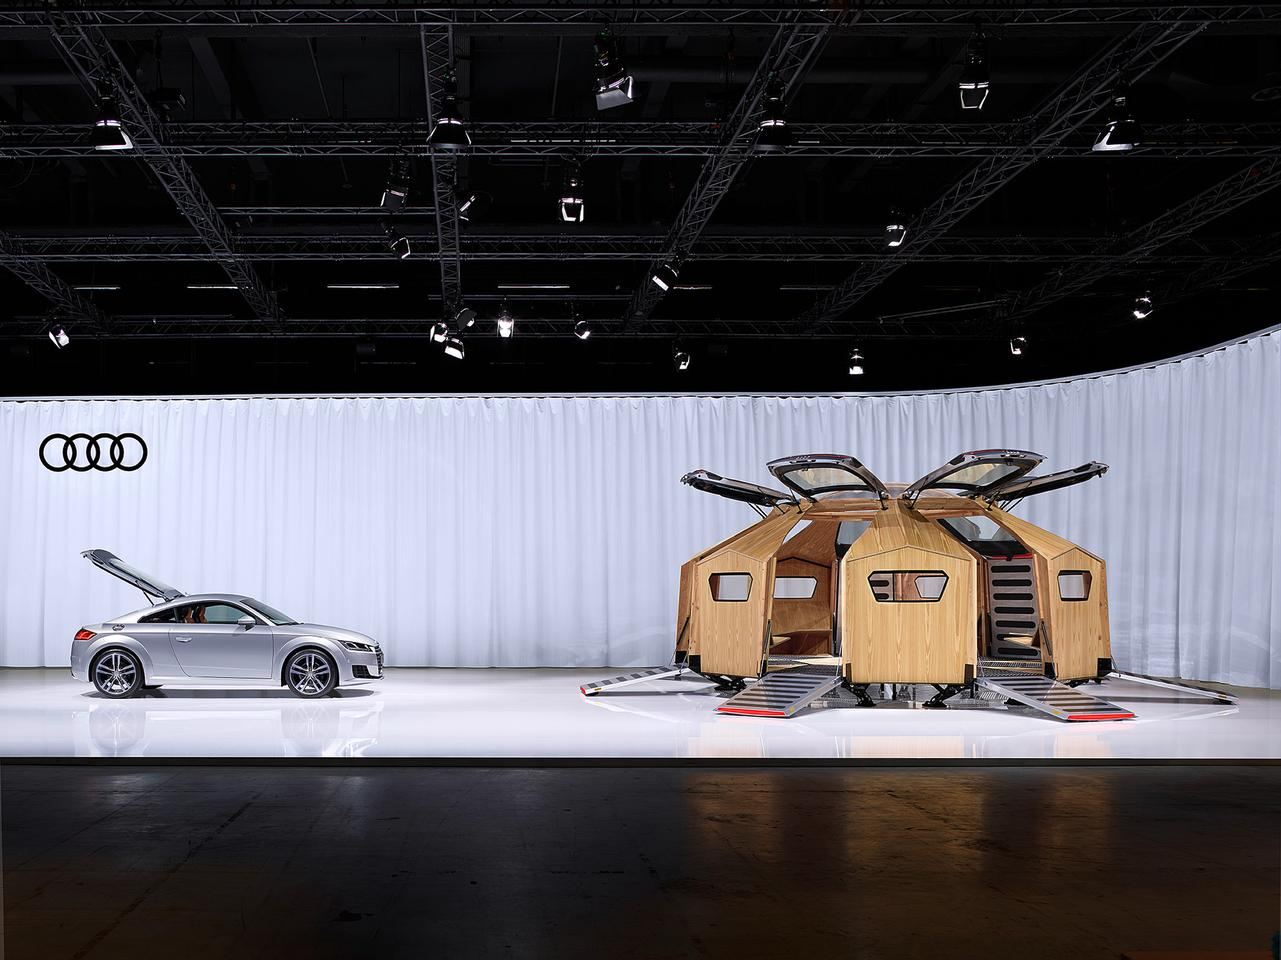 The Audi TT Pavilion is on display at the Design Miami/Basel show